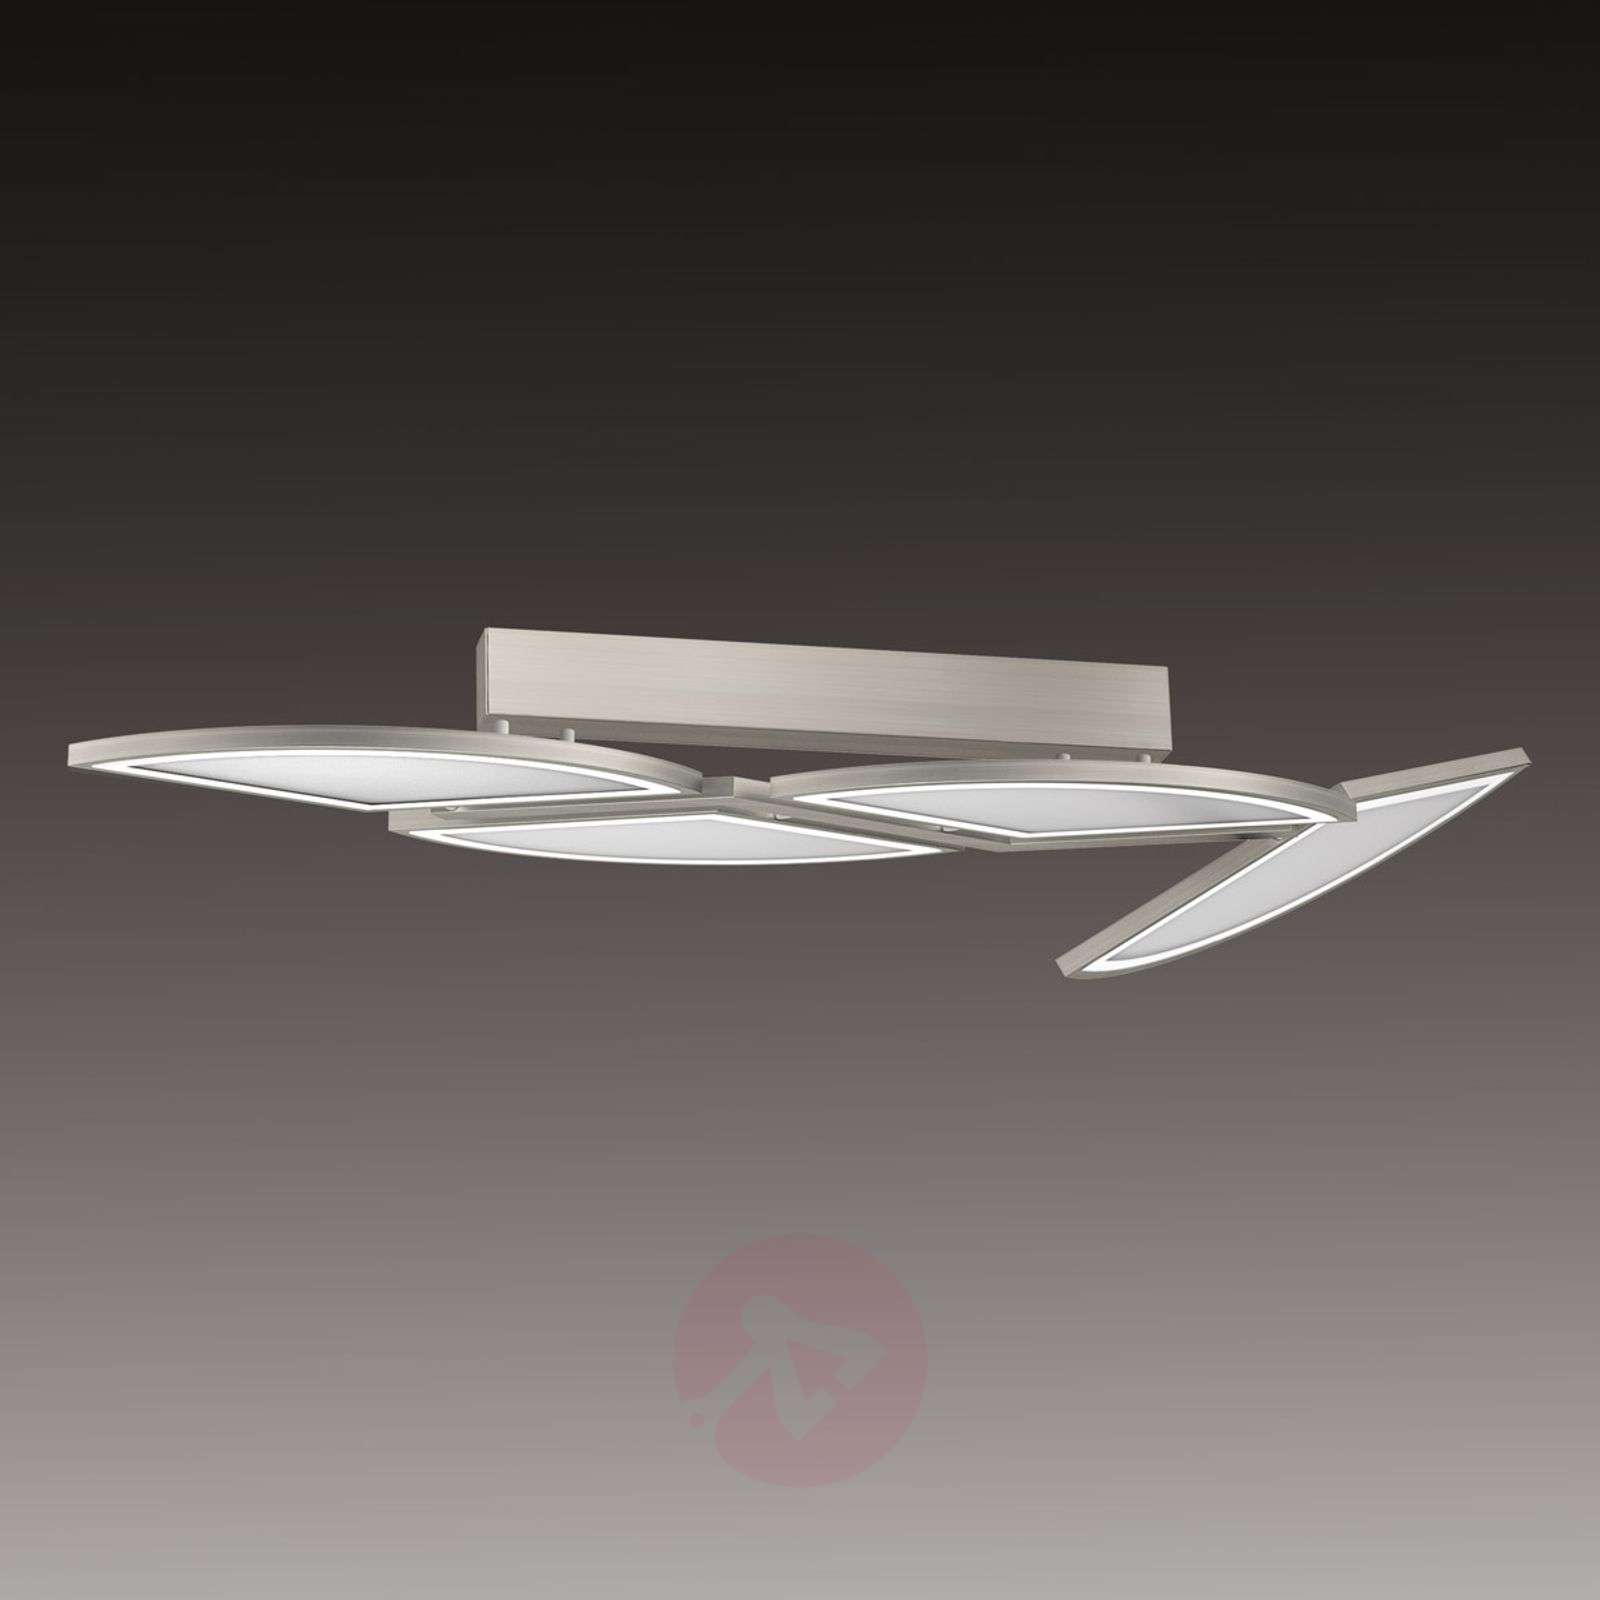 Movil LED-plafondlamp met 4 lichtsegmenten-3025249-01